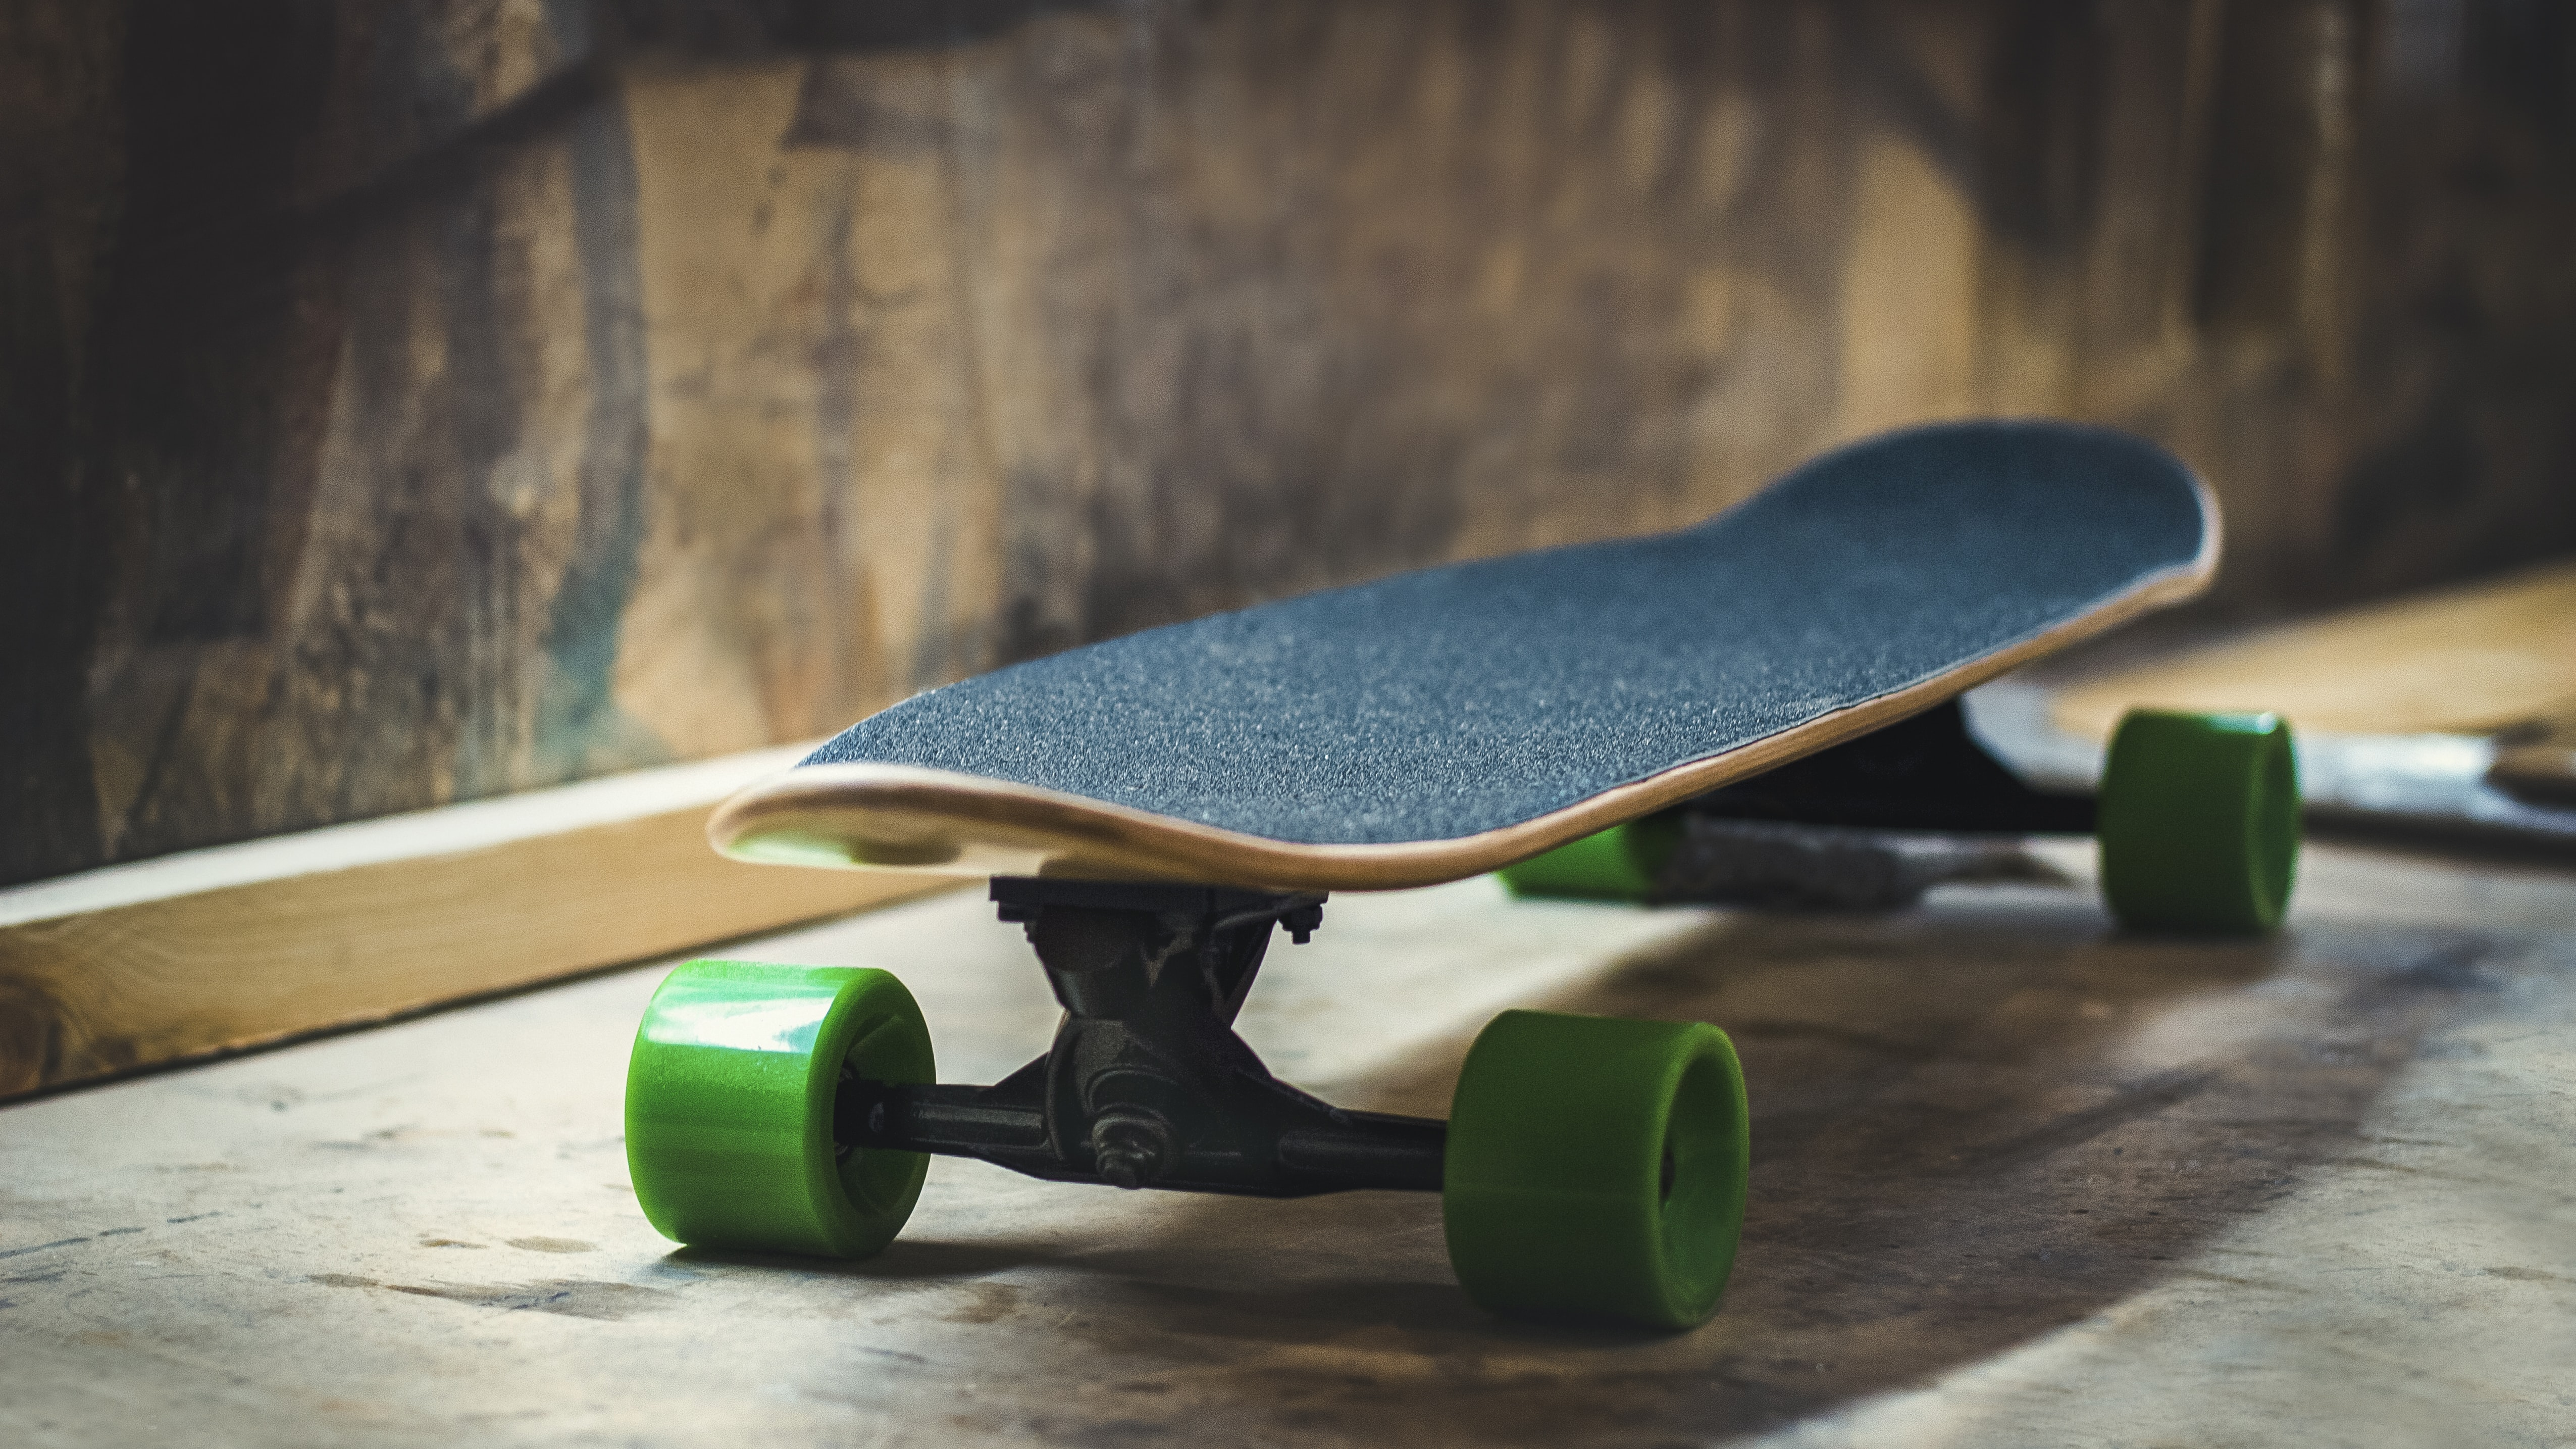 Blue skateboard with green wheels near a wooden wall